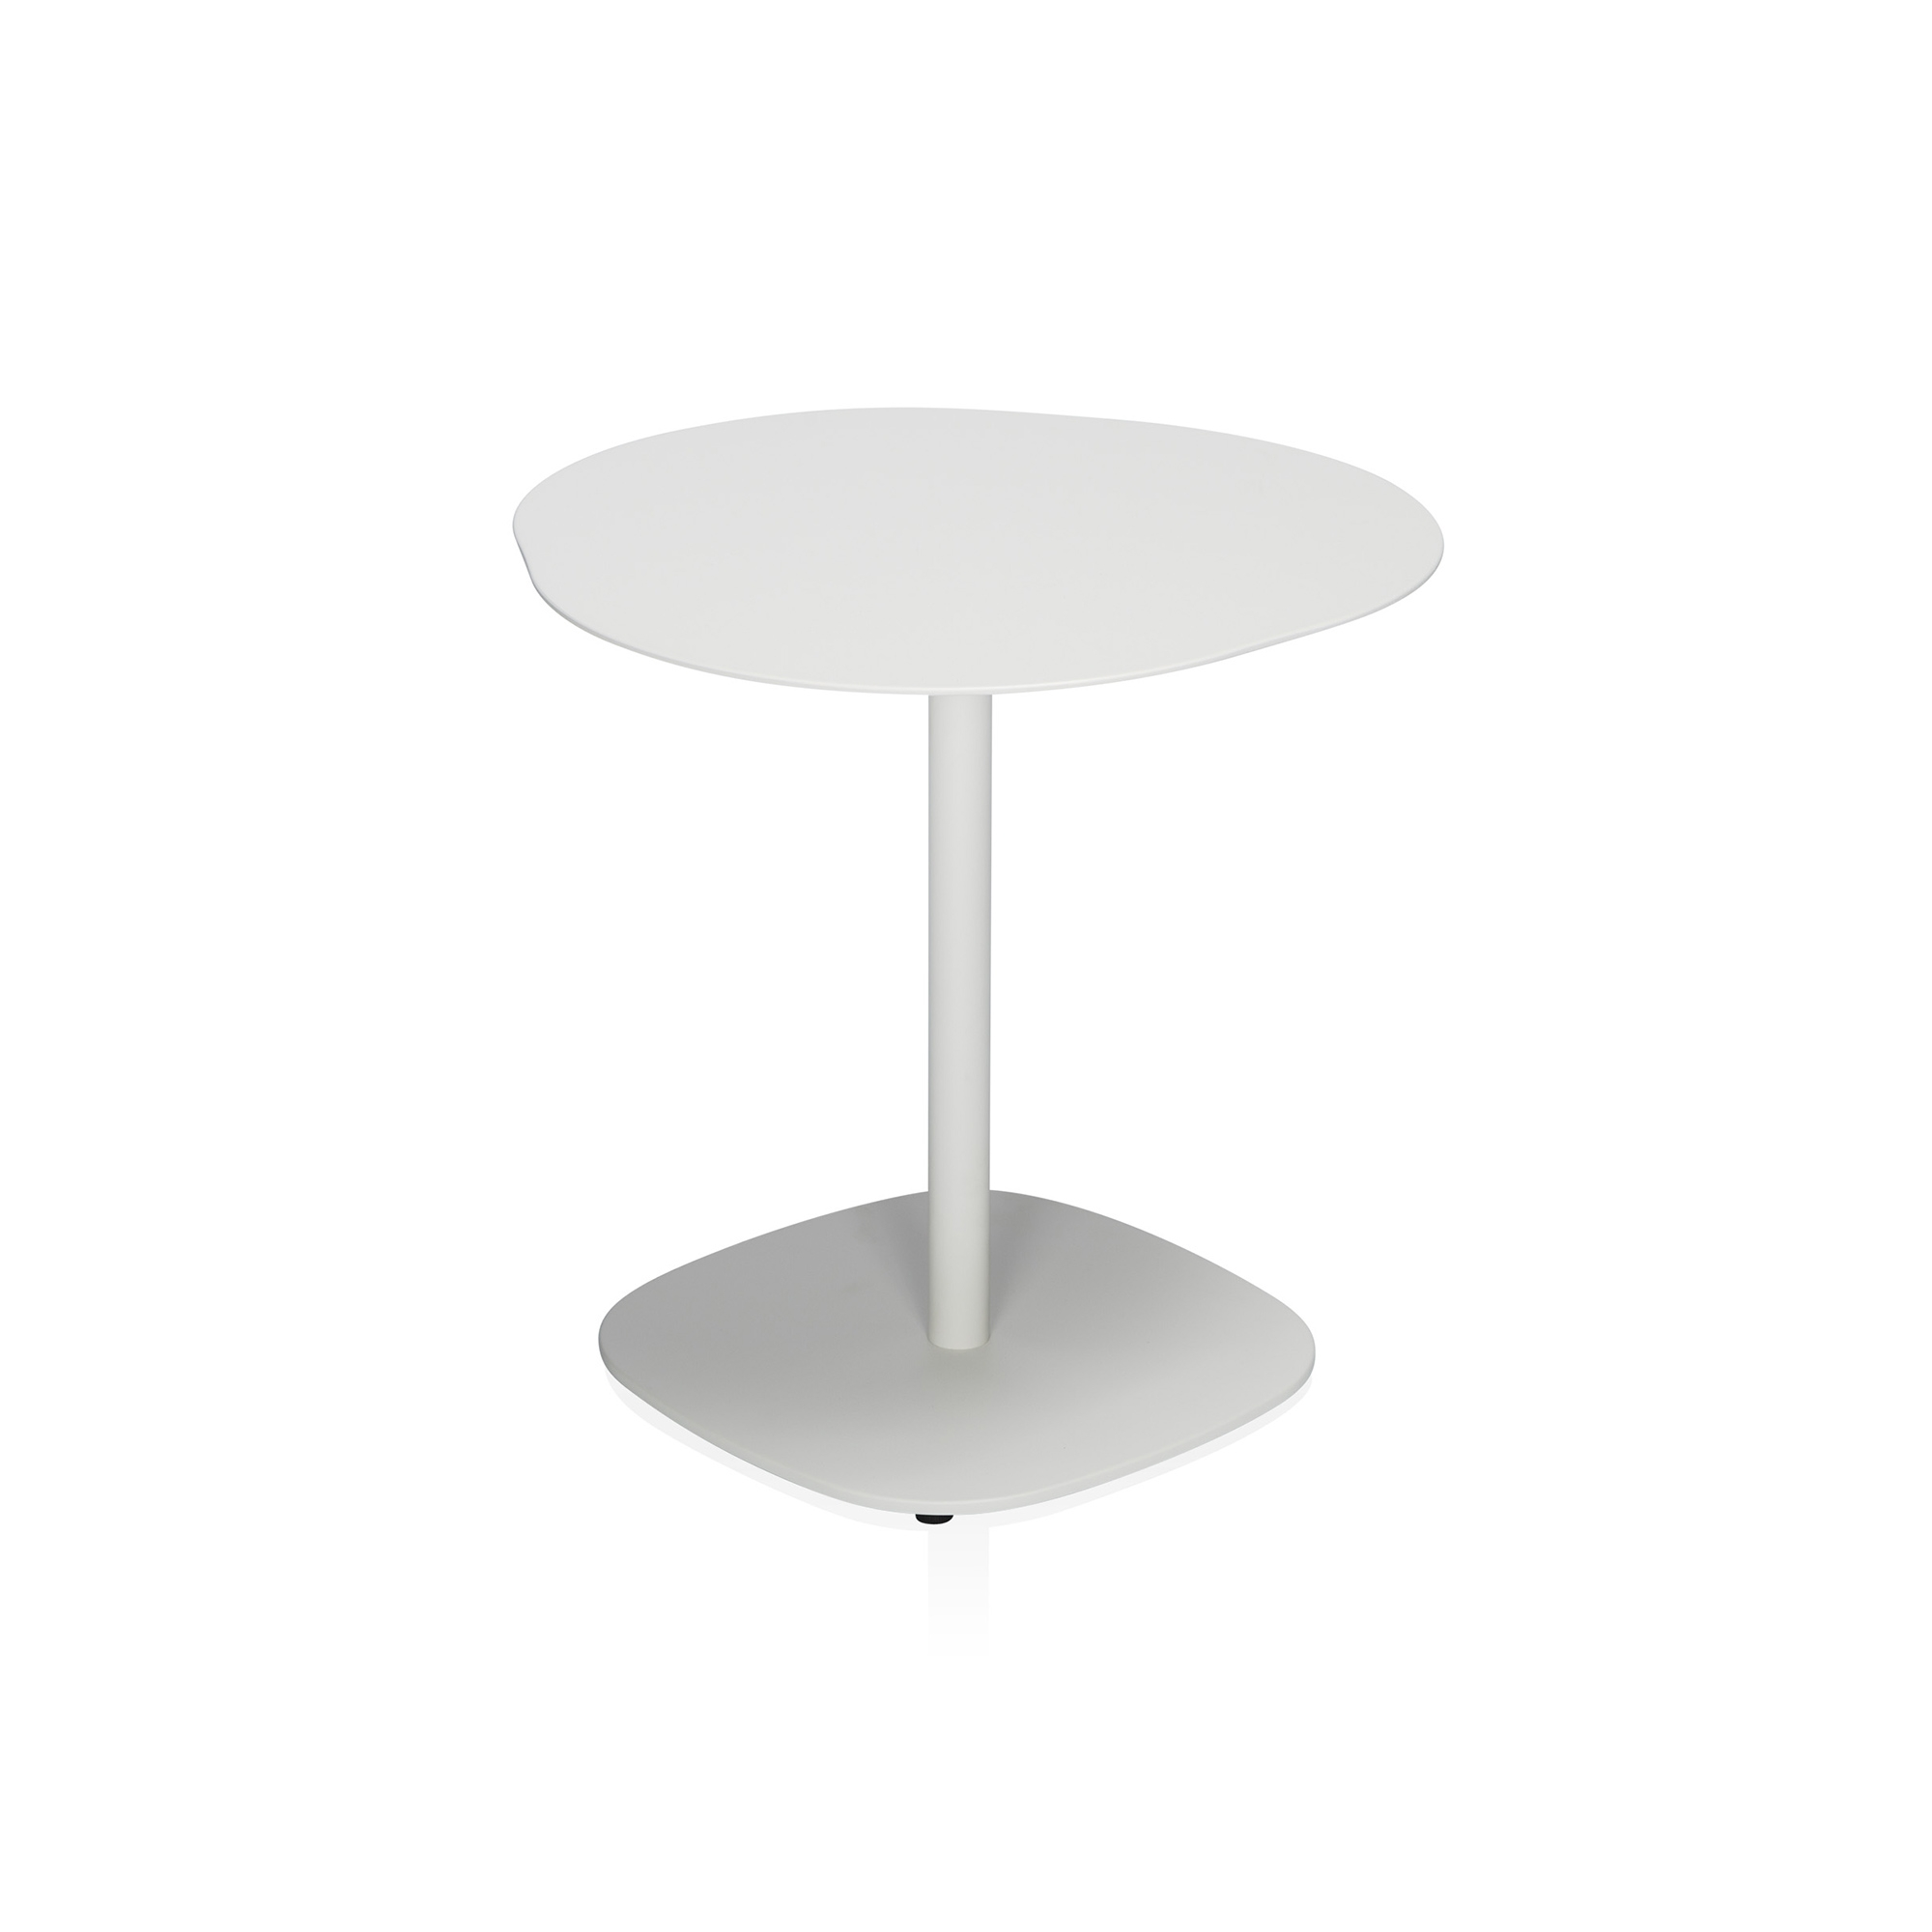 belle outdoor side table coco republic white furniture accent lamp shades for lamps shower chair target round ikea wine stand ashley chairside farmhouse dining aqua pier papasan